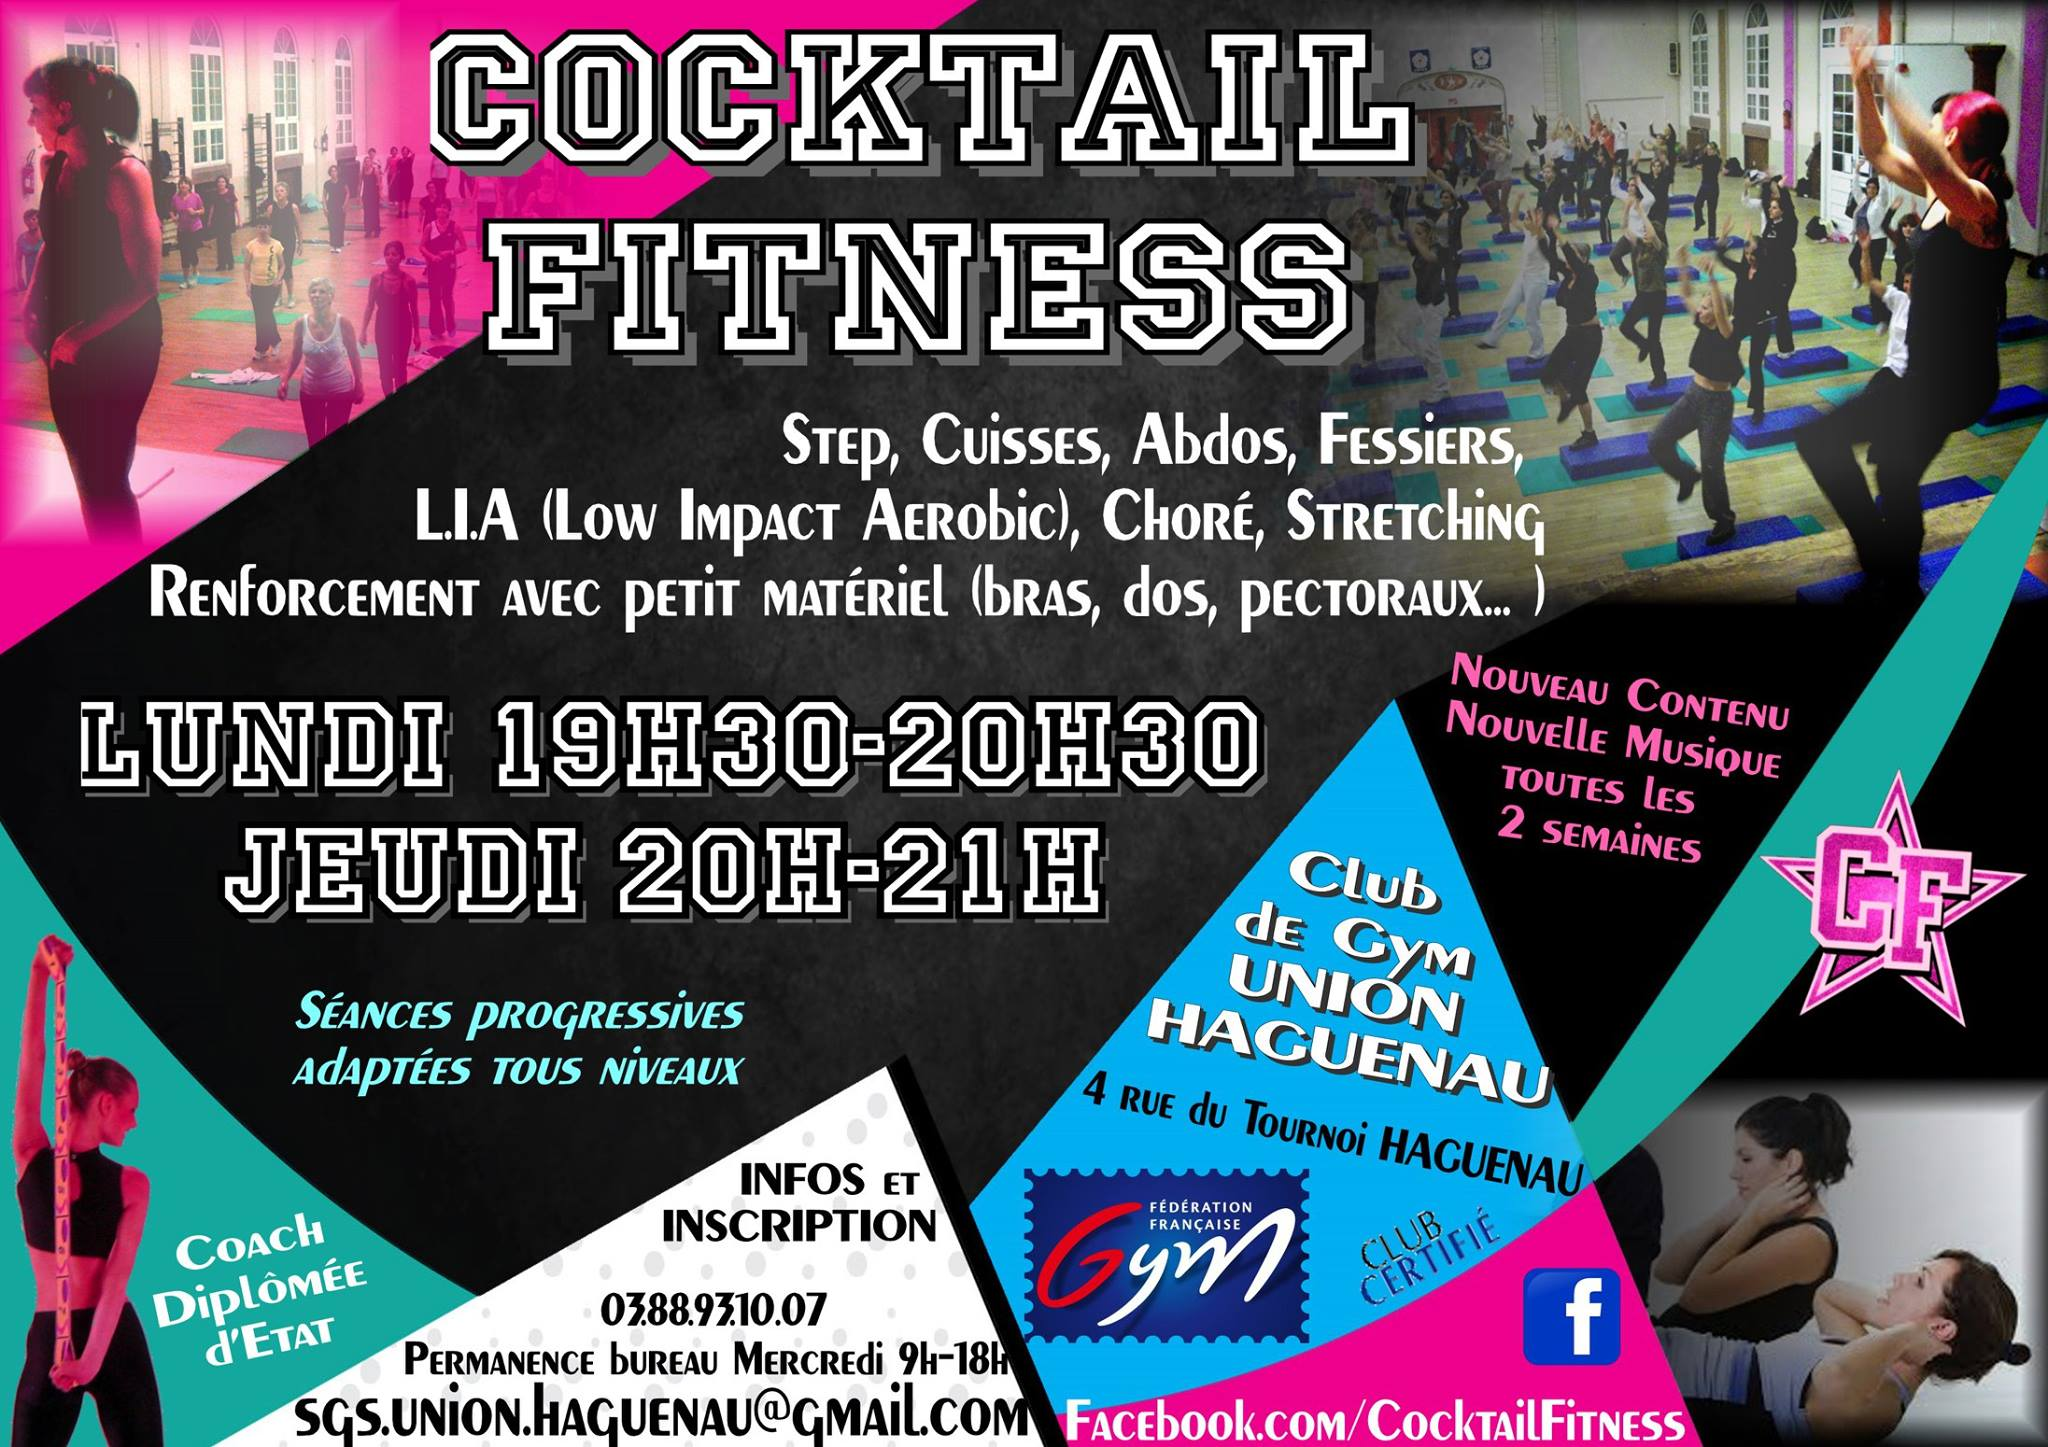 Cocktail fitness avec anne gym union haguenau for Cocktail fitness